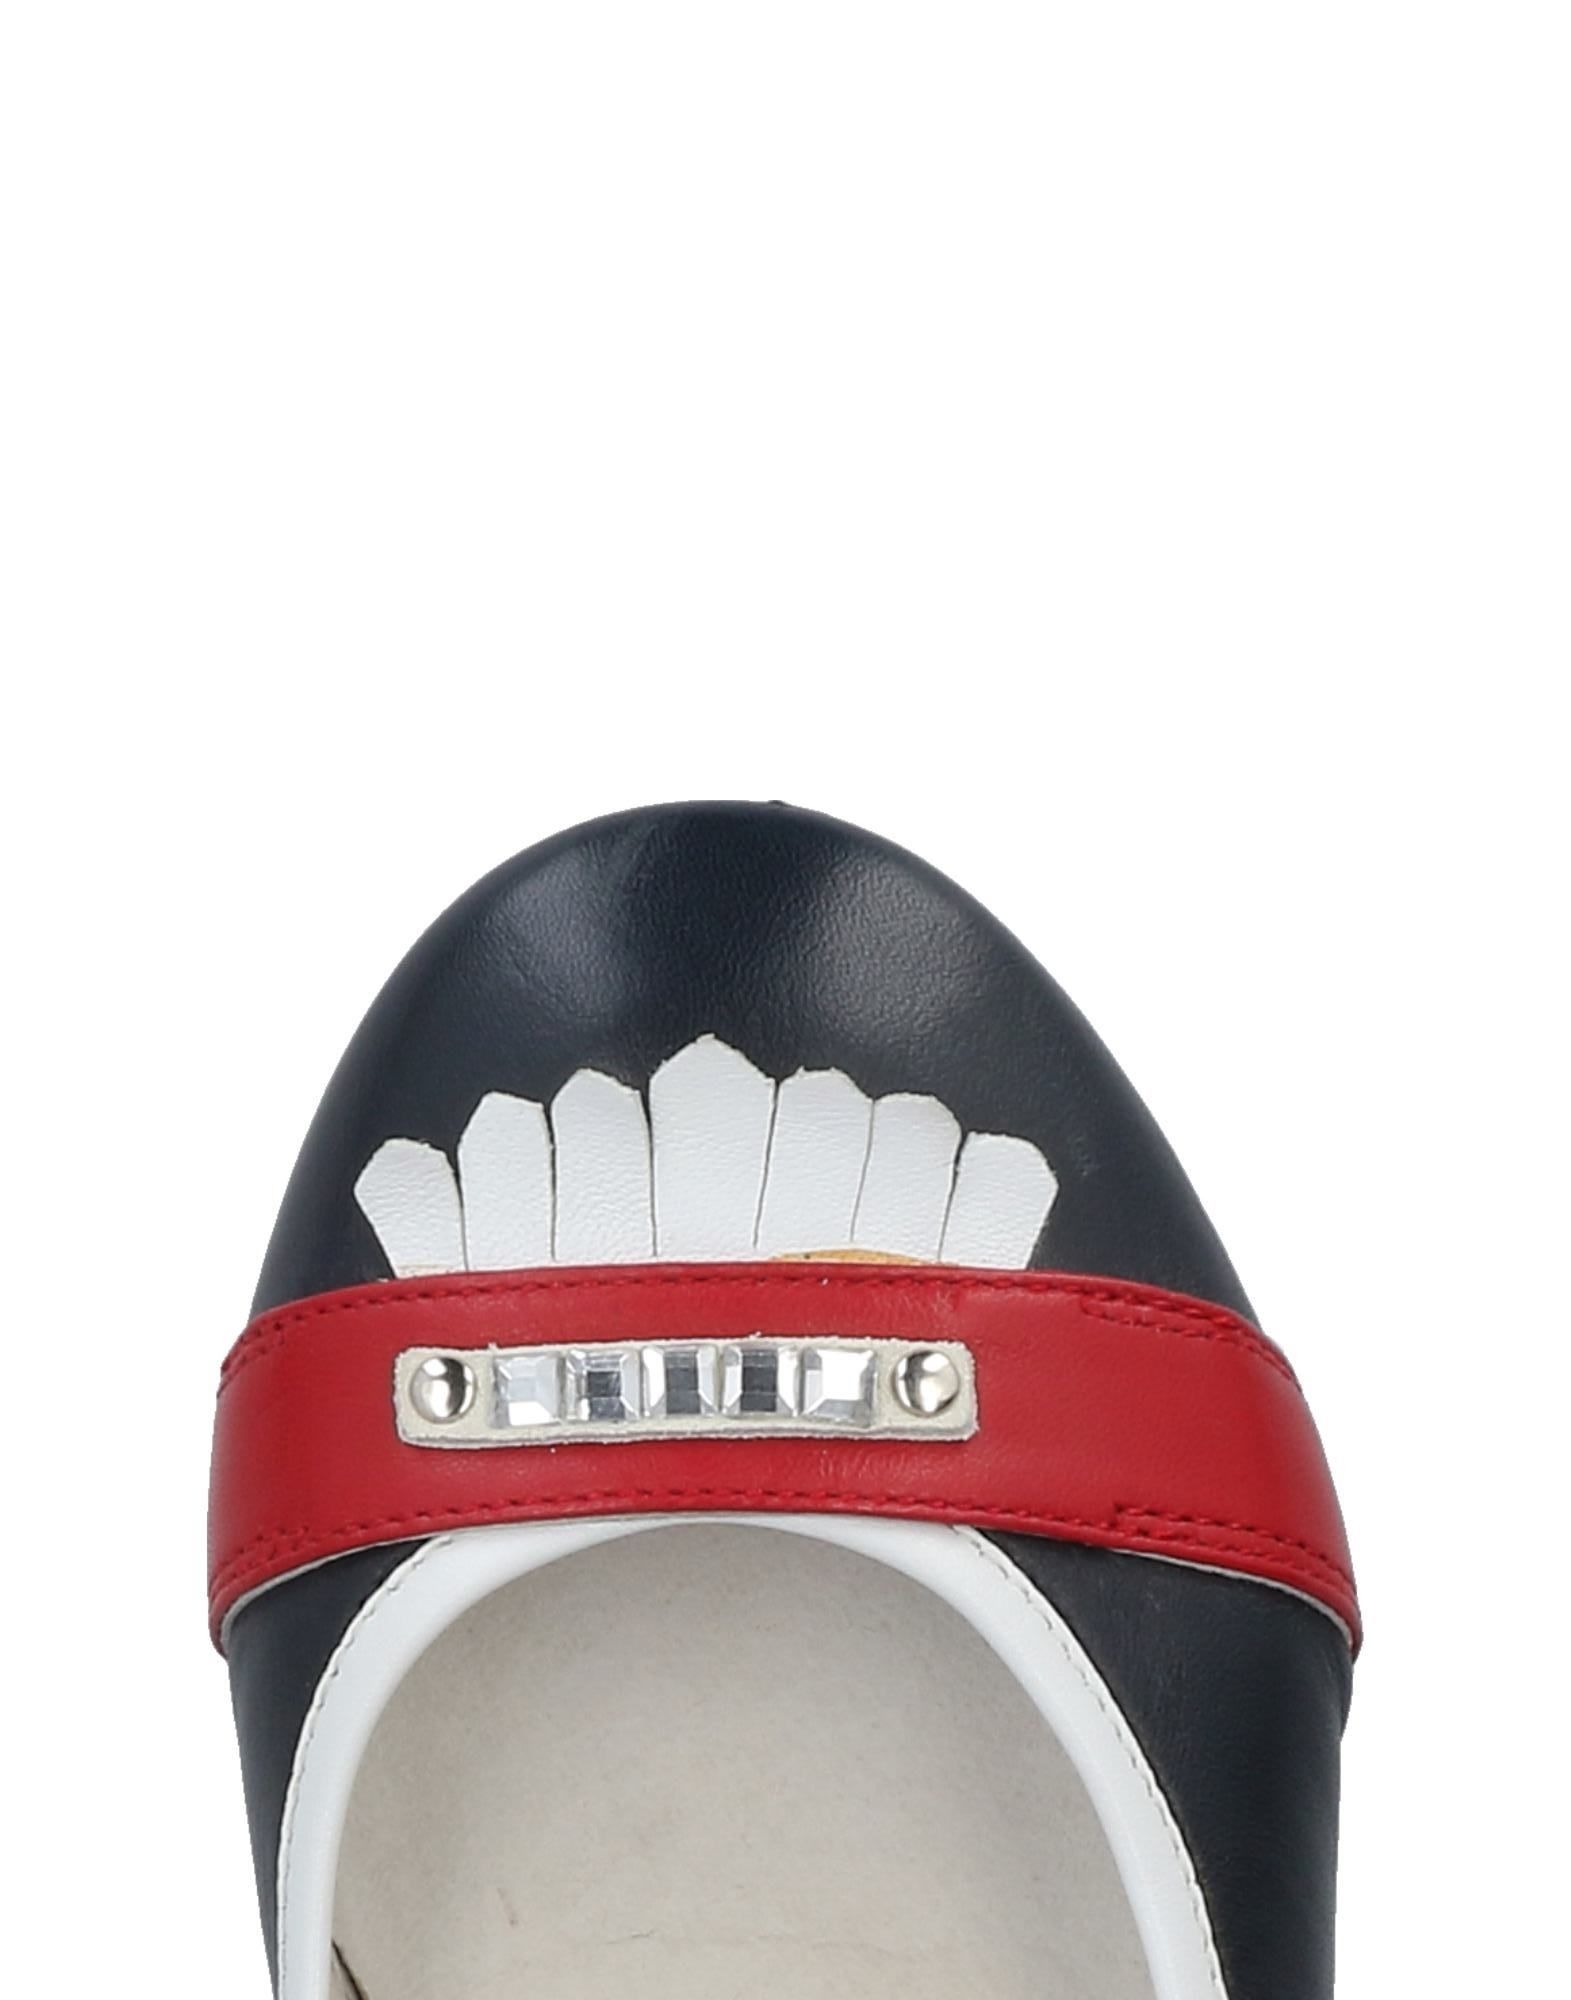 Ballerines Hornet By Botticelli Femme - Ballerines Hornet By Botticelli sur